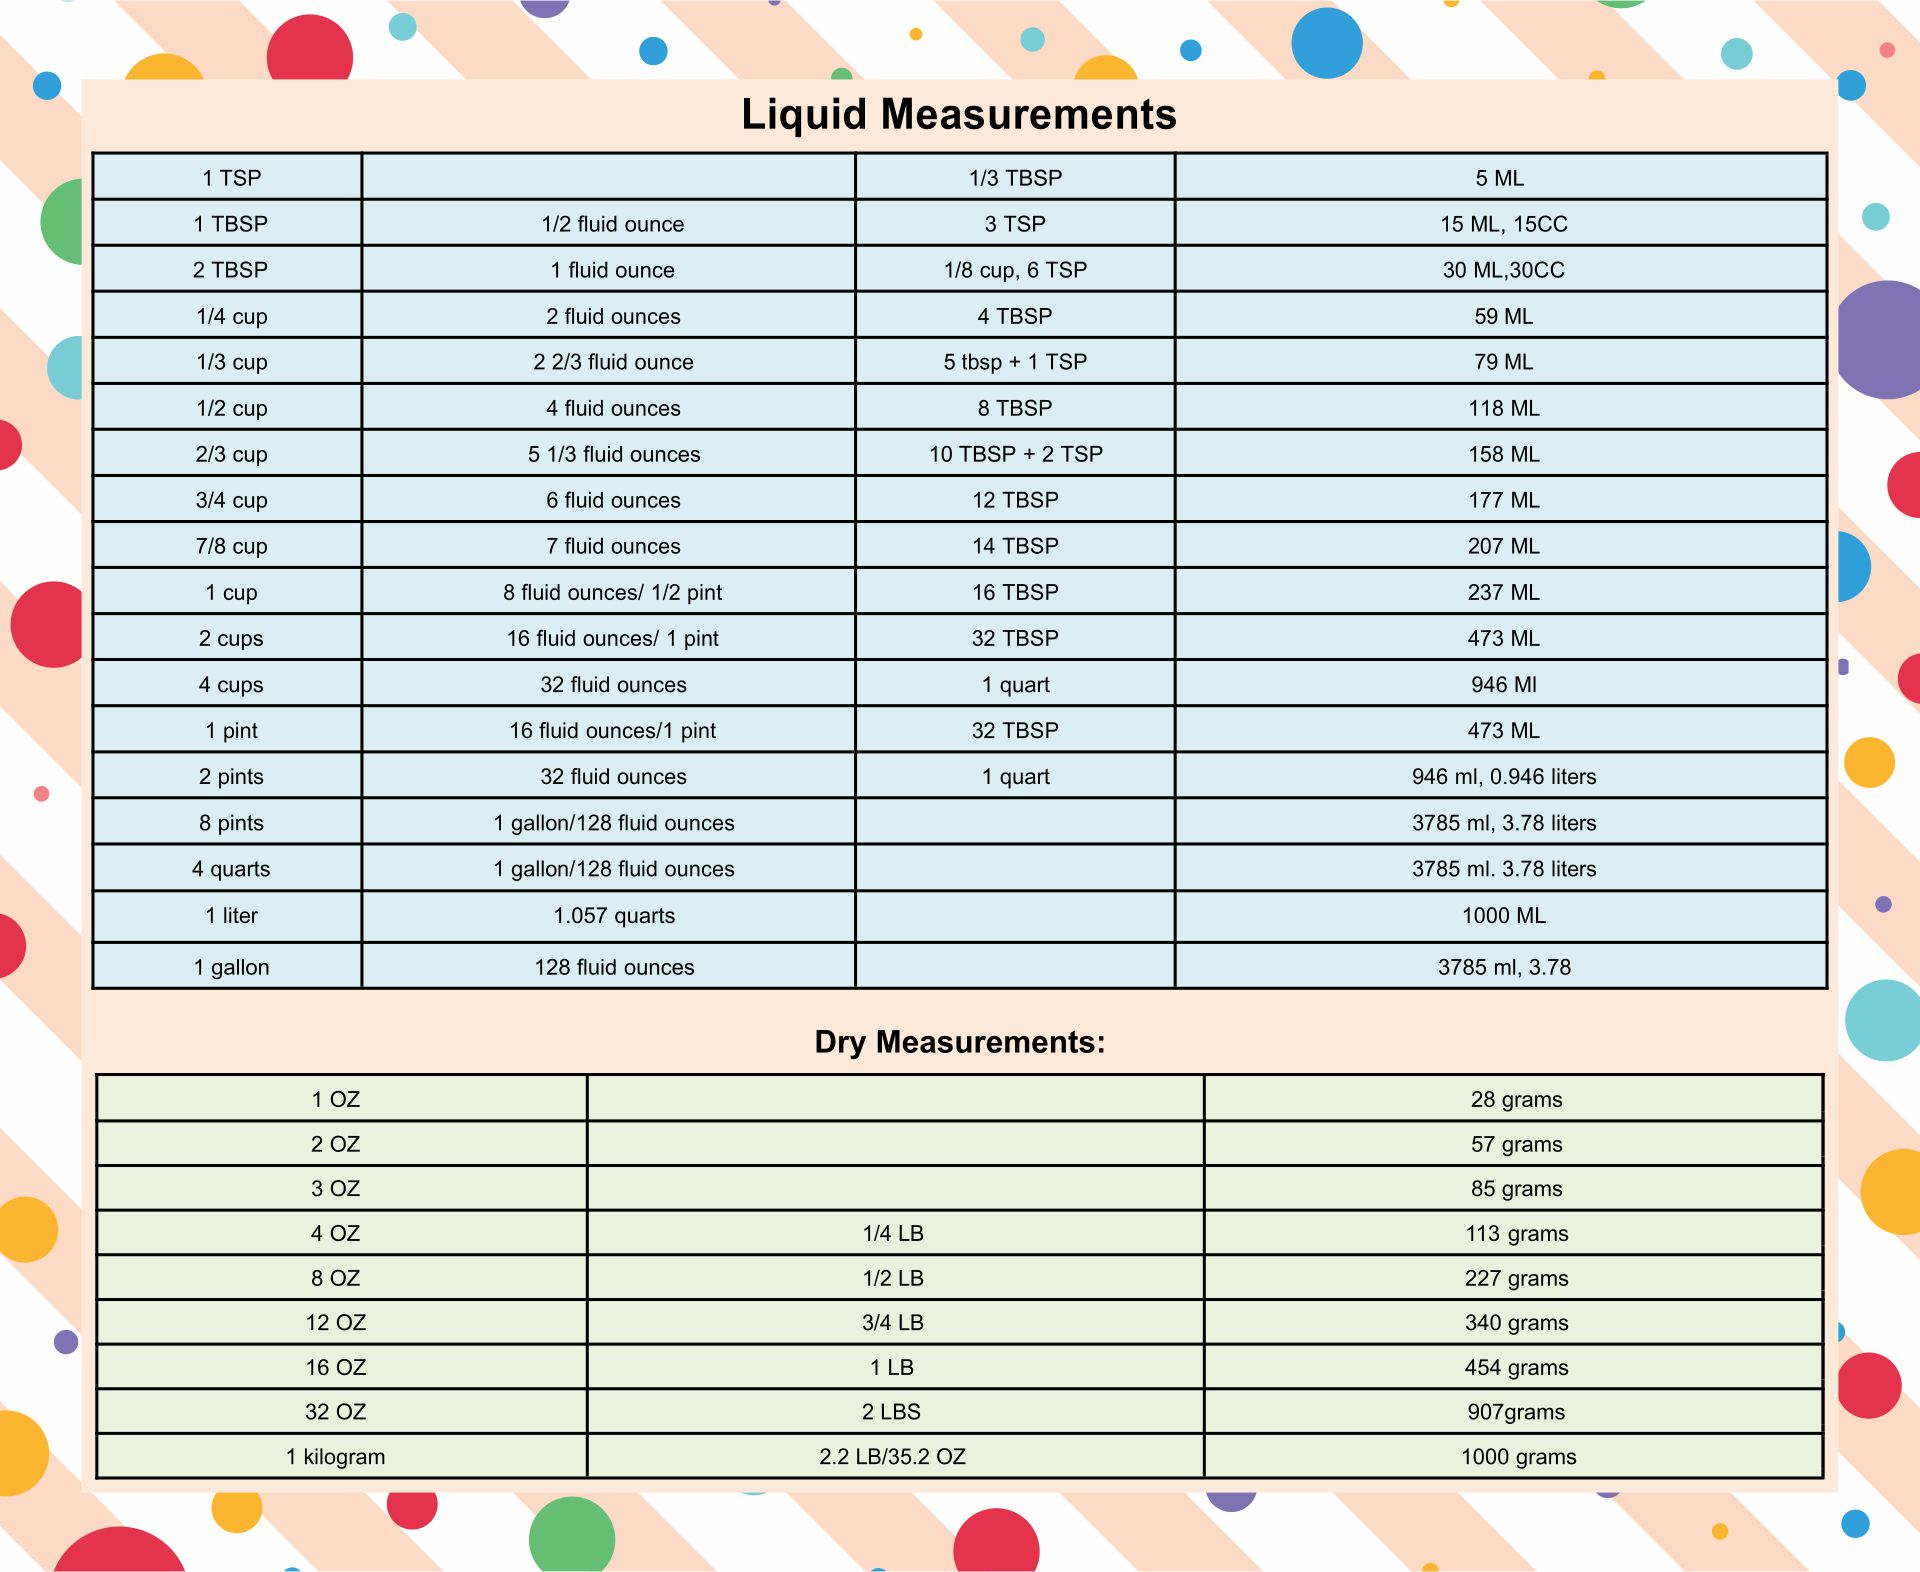 8 Best Images of Printable Table Of Measurements - Printable Measurement Table. Measurement Conversion Table Chart and Liquid Measurement ...